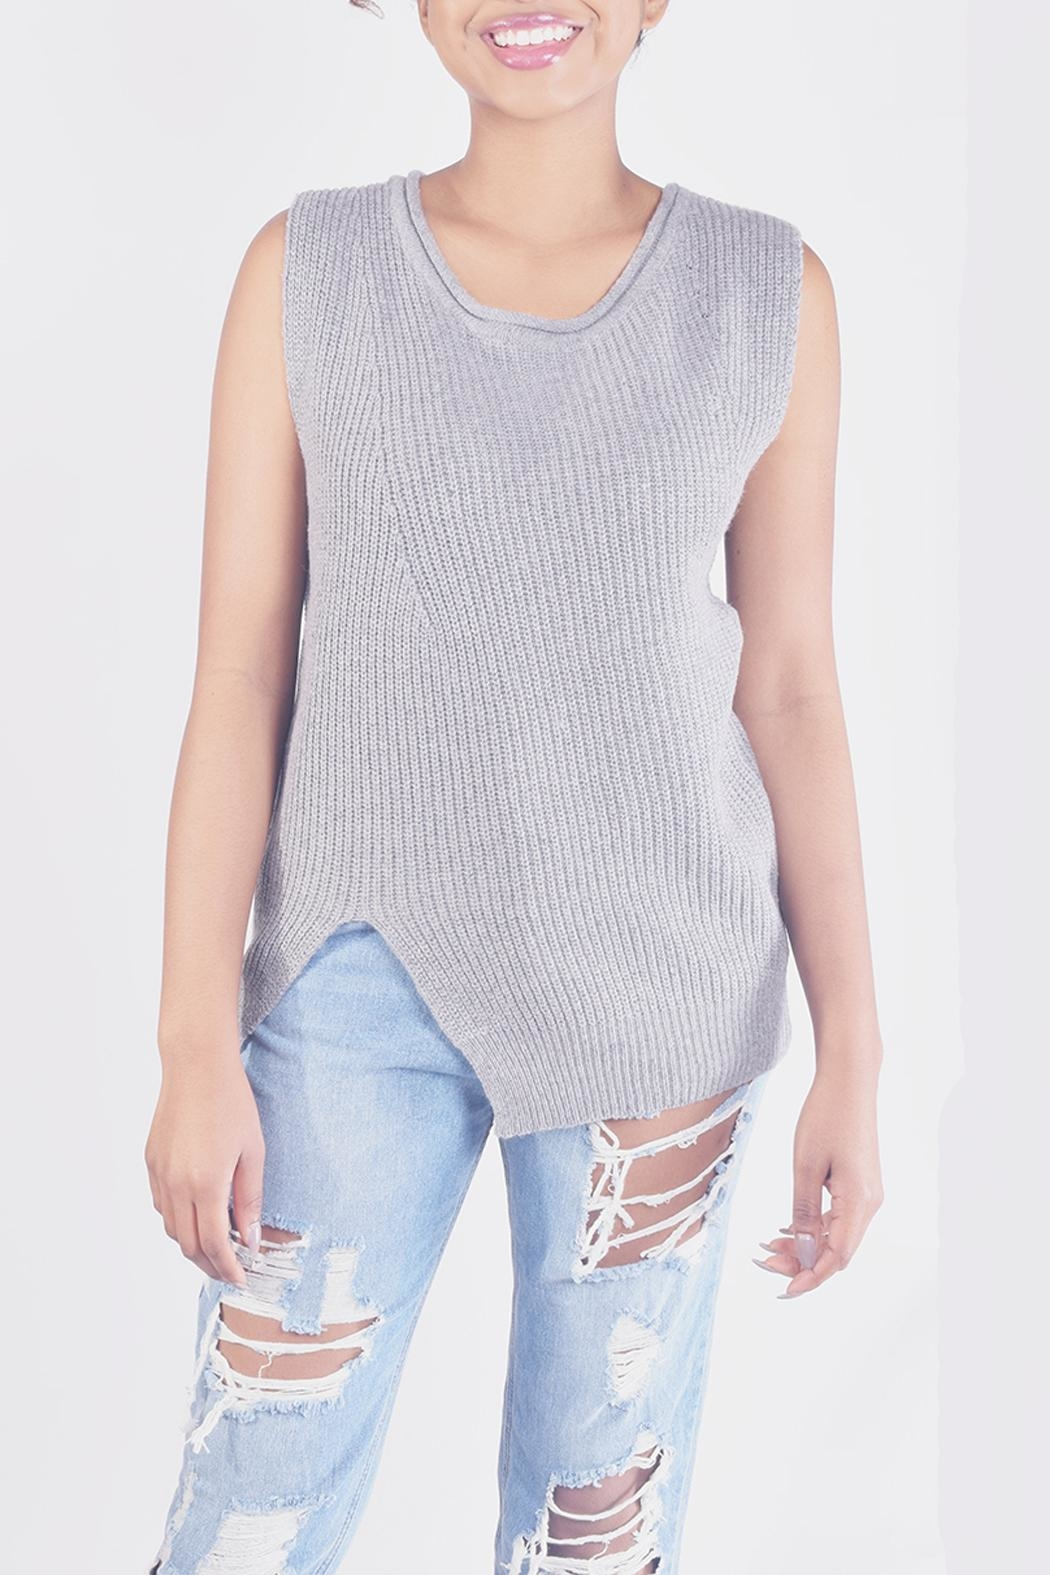 Ellison Chic Sleevless Knit-Top - Main Image